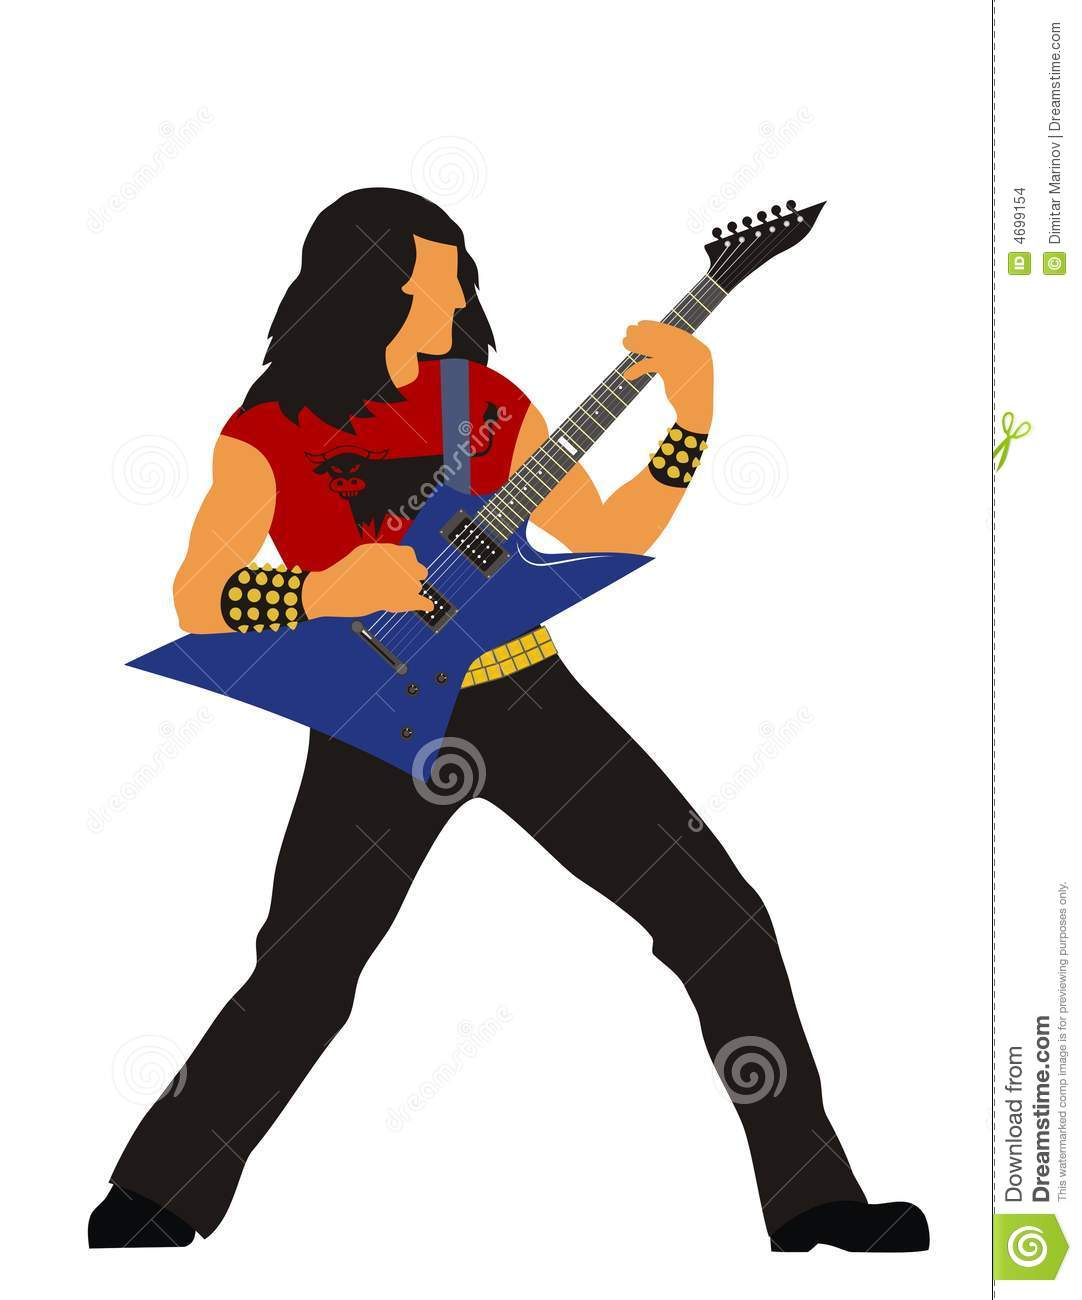 Heavy Metal clipart #7, Download drawings